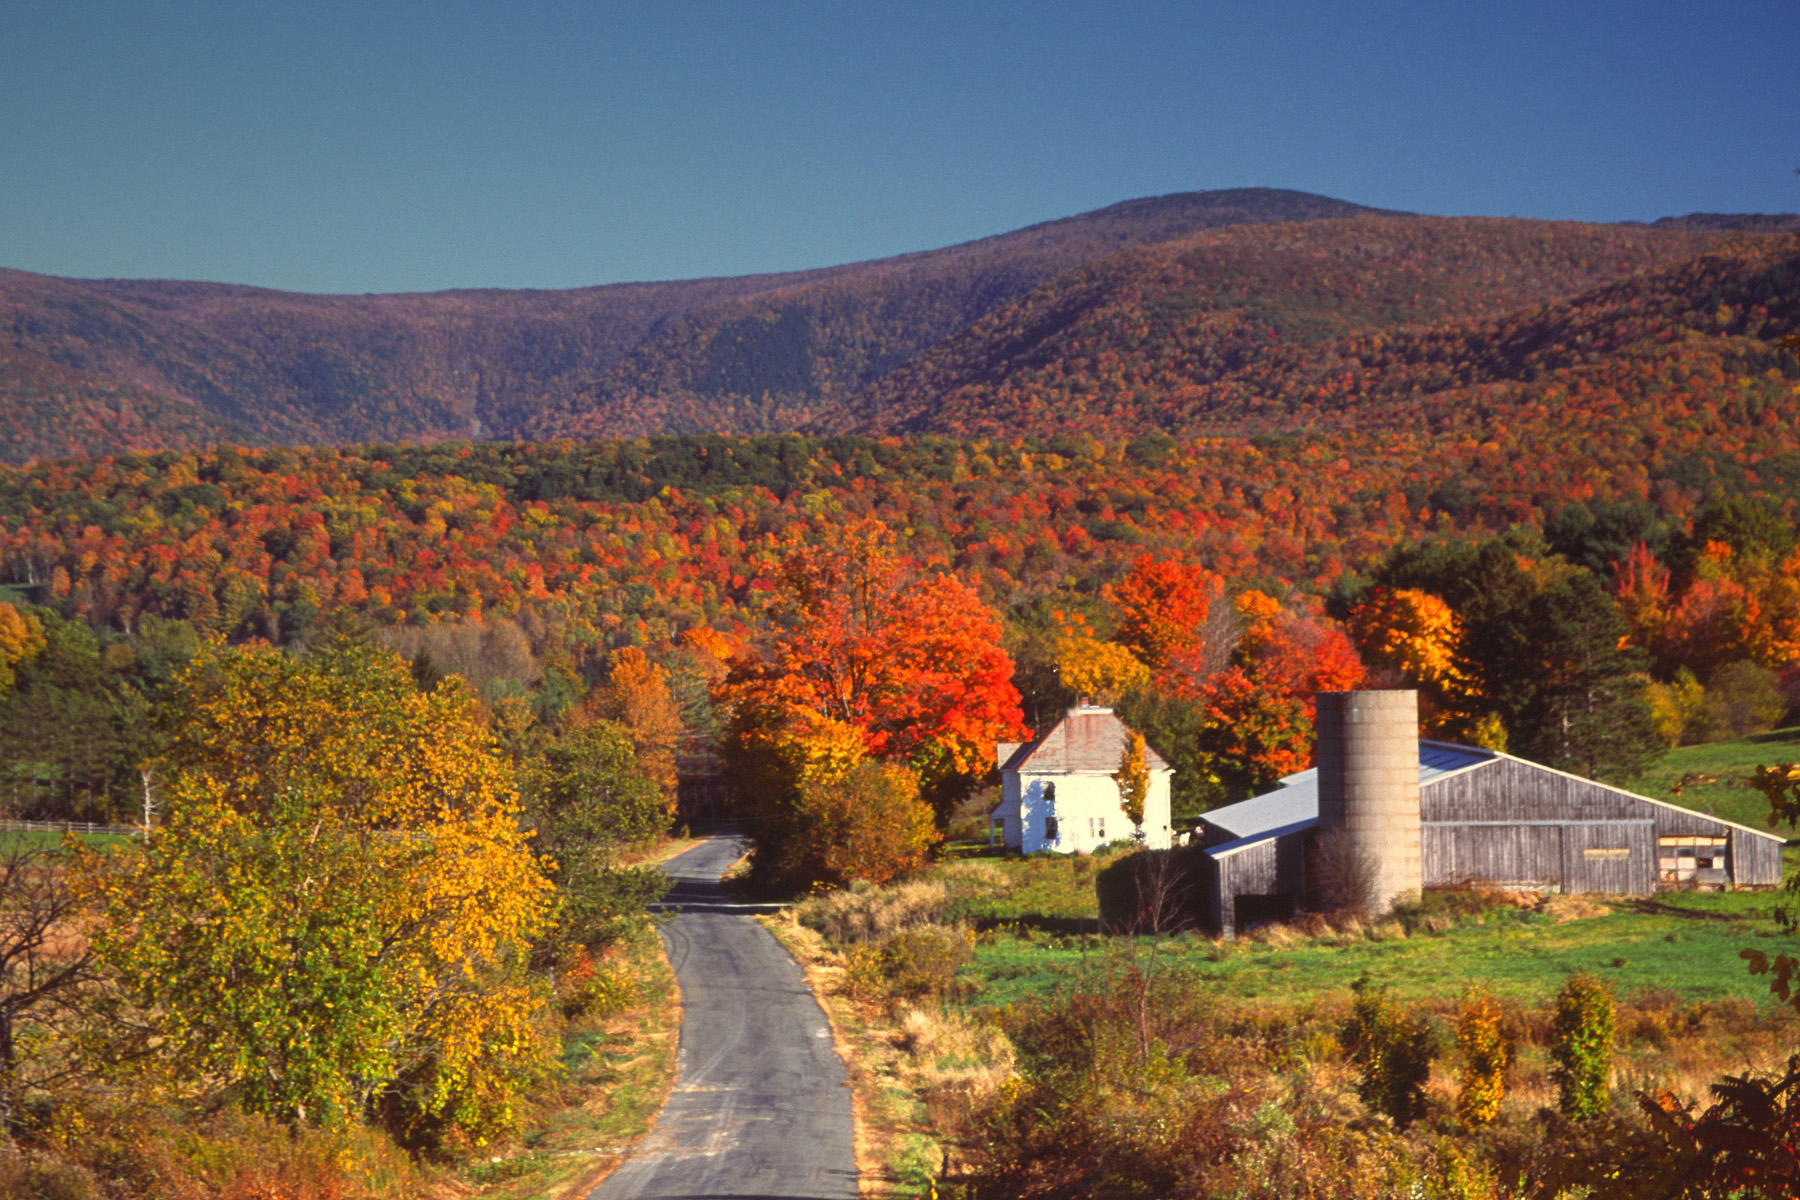 America's Top 7 Scenic Fall Road Trips Under $500